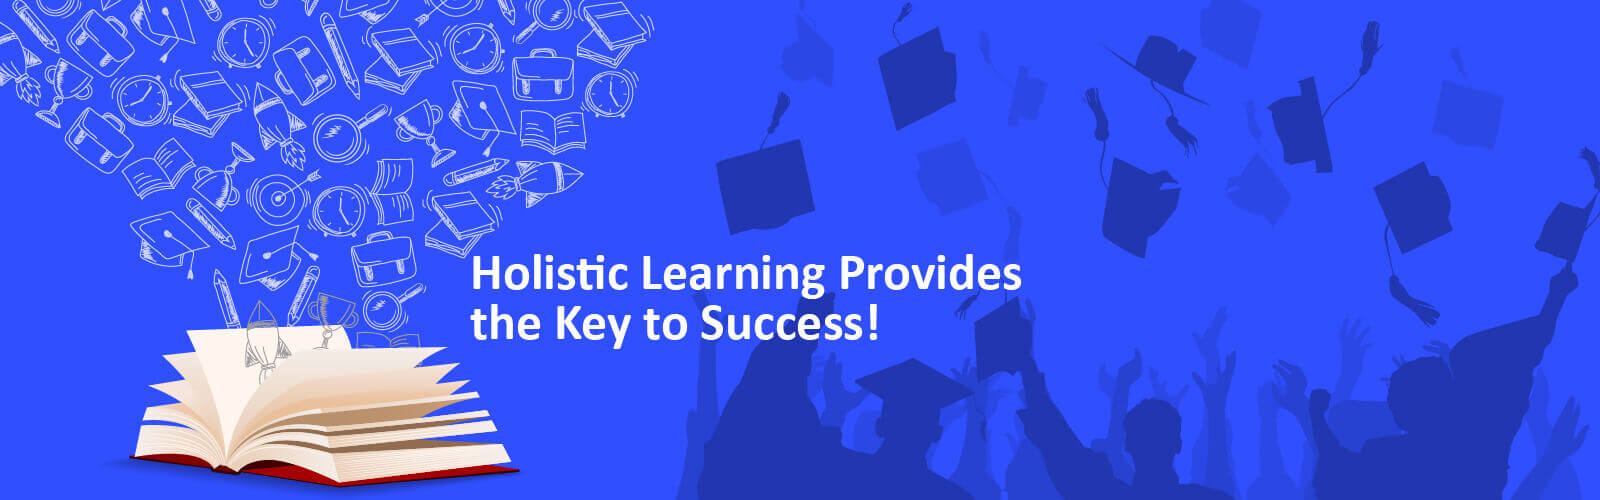 Holistic Learning Provides the Key to Success!